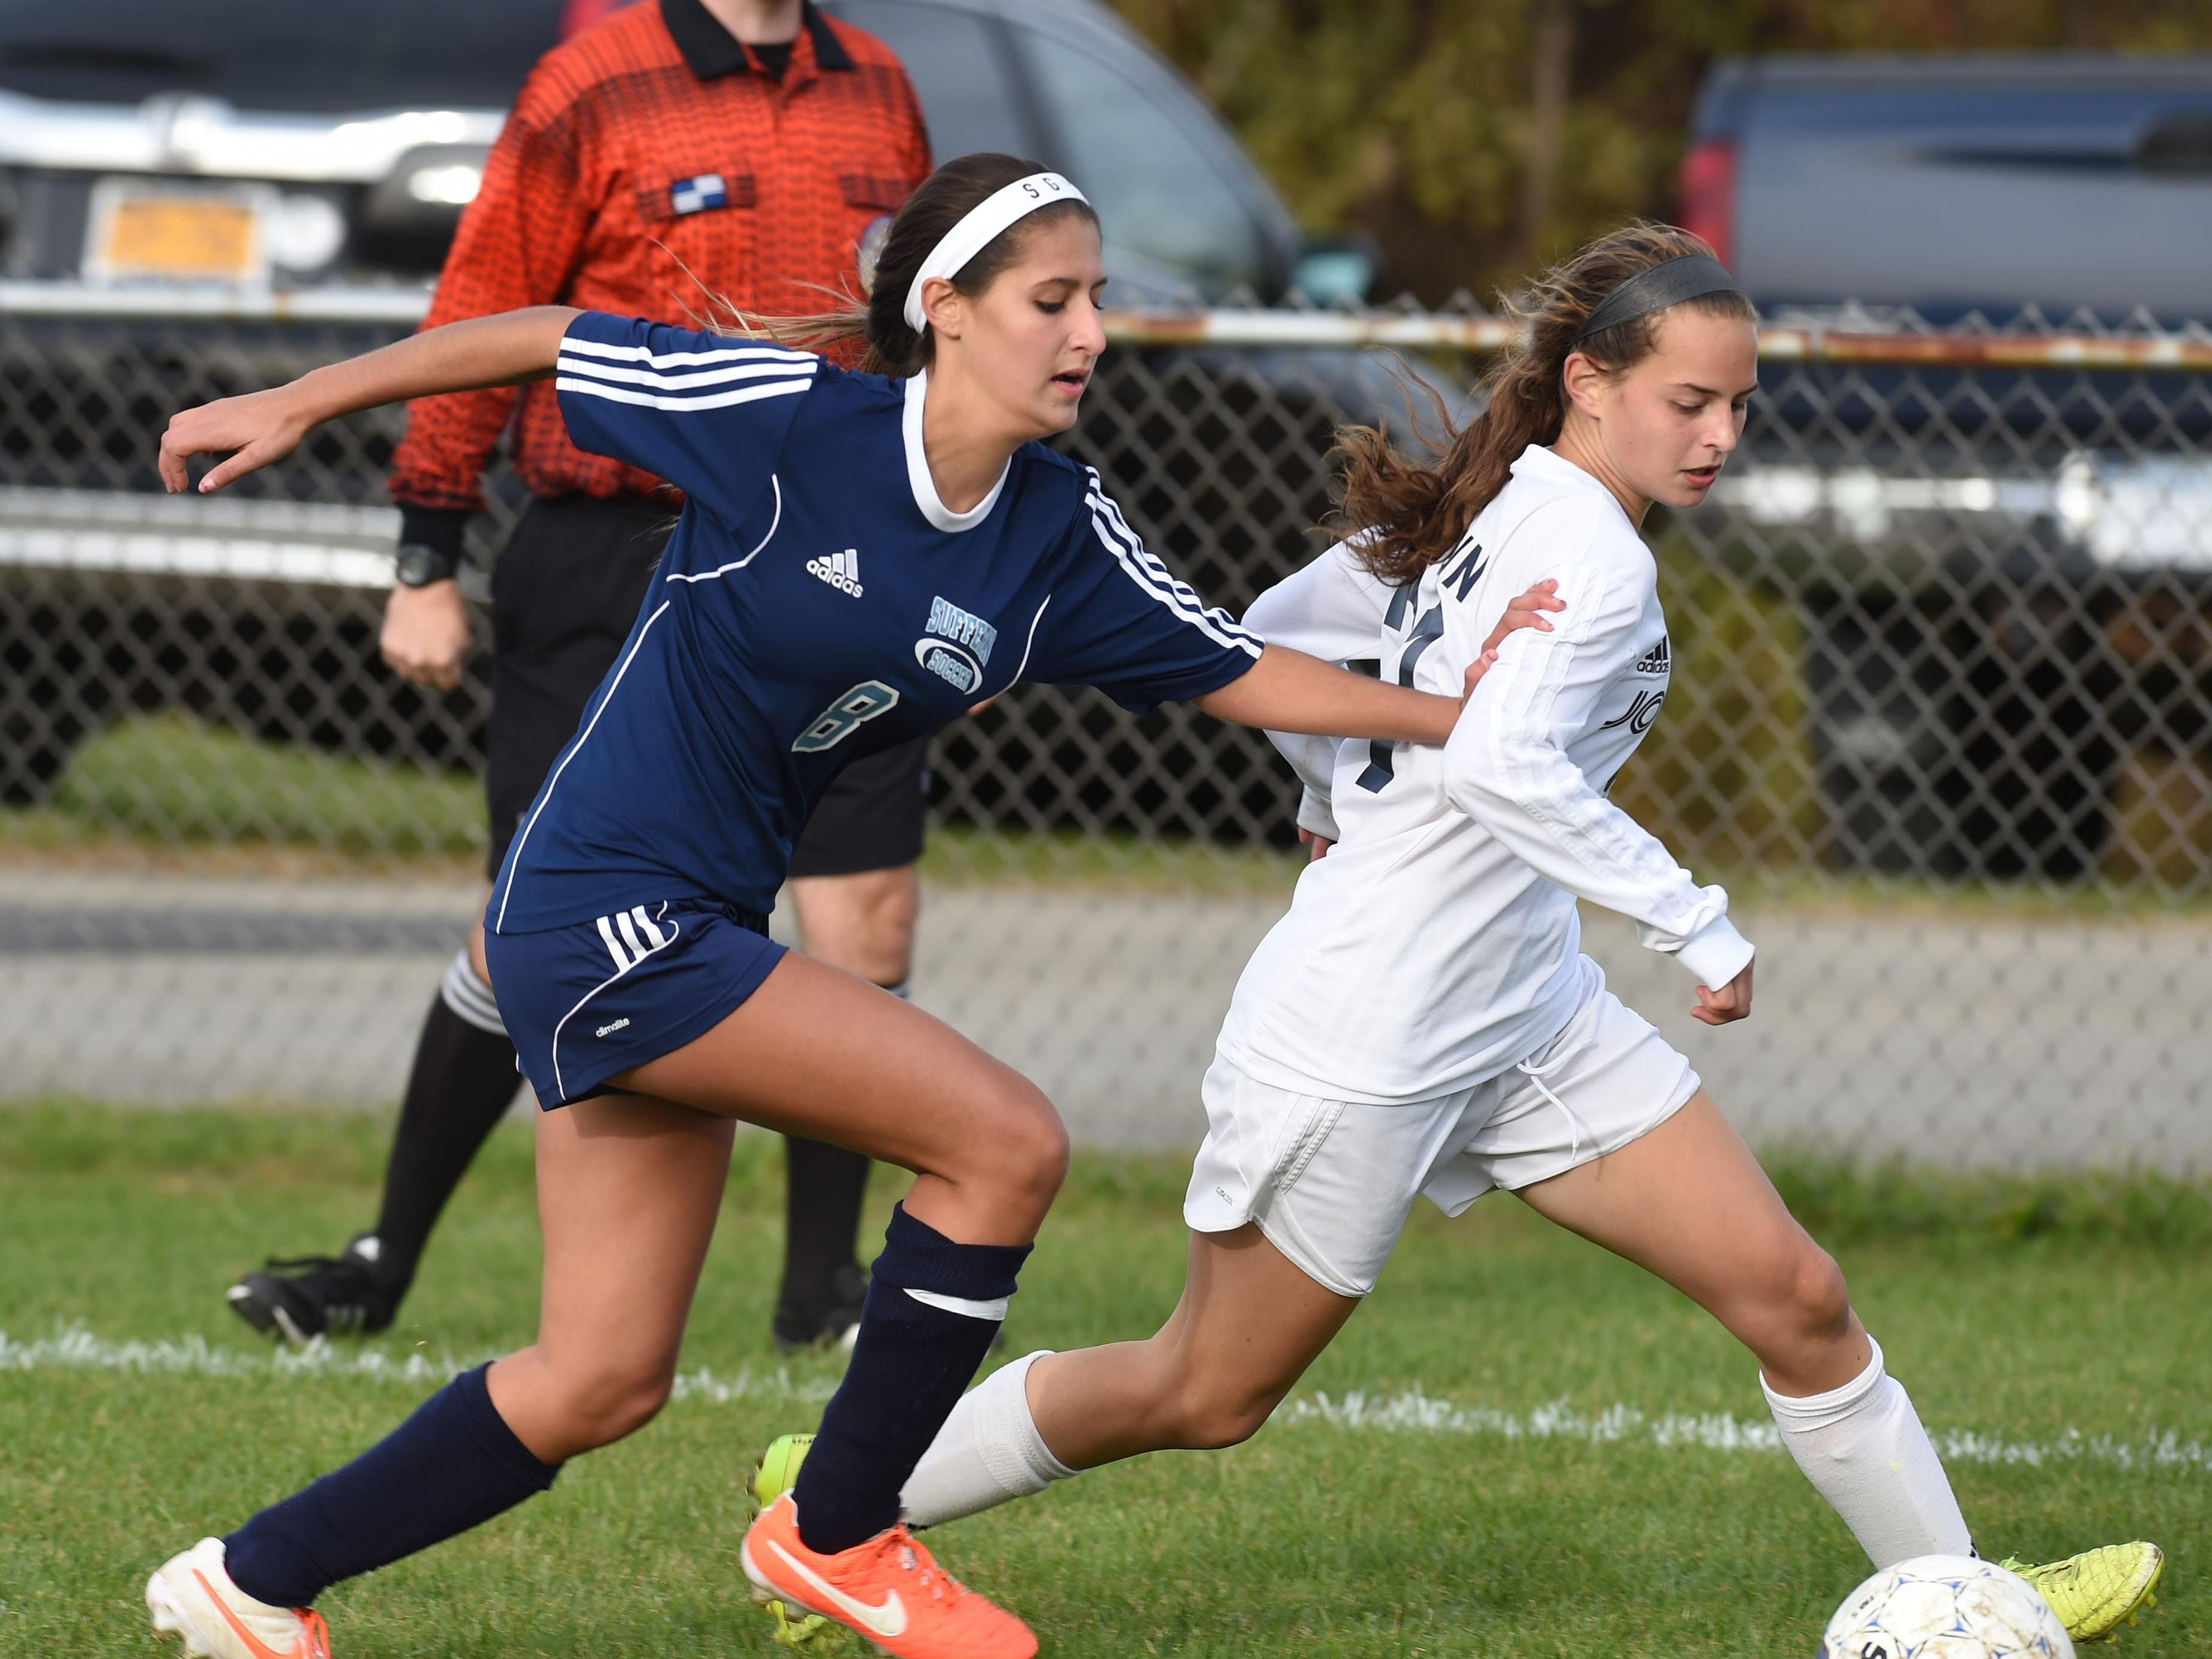 John Jay's Kiley Longin, right, takes the ball down field as Suffern's Jackie Santangelo, left, defends during Tuesday's playoff game.